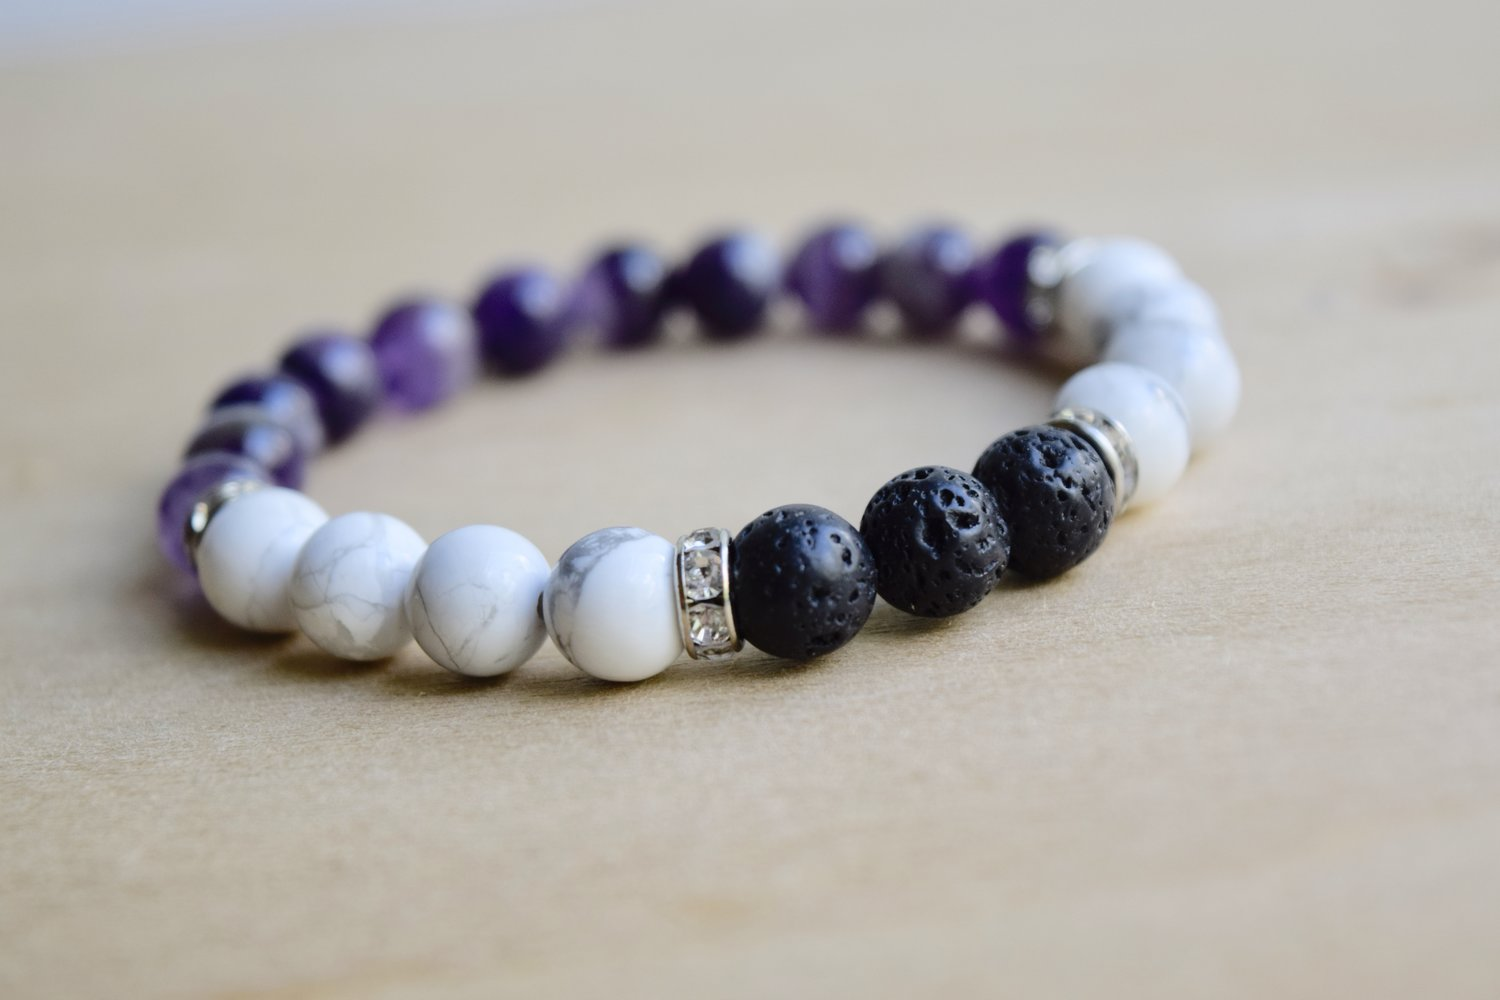 0c8fcef63b3 SPIRITUAL PEACE // Howlite and Amethyst Meditation Bracelet with Essential  Oil Diffusing Lava Stone Beads — Mumbles & Things